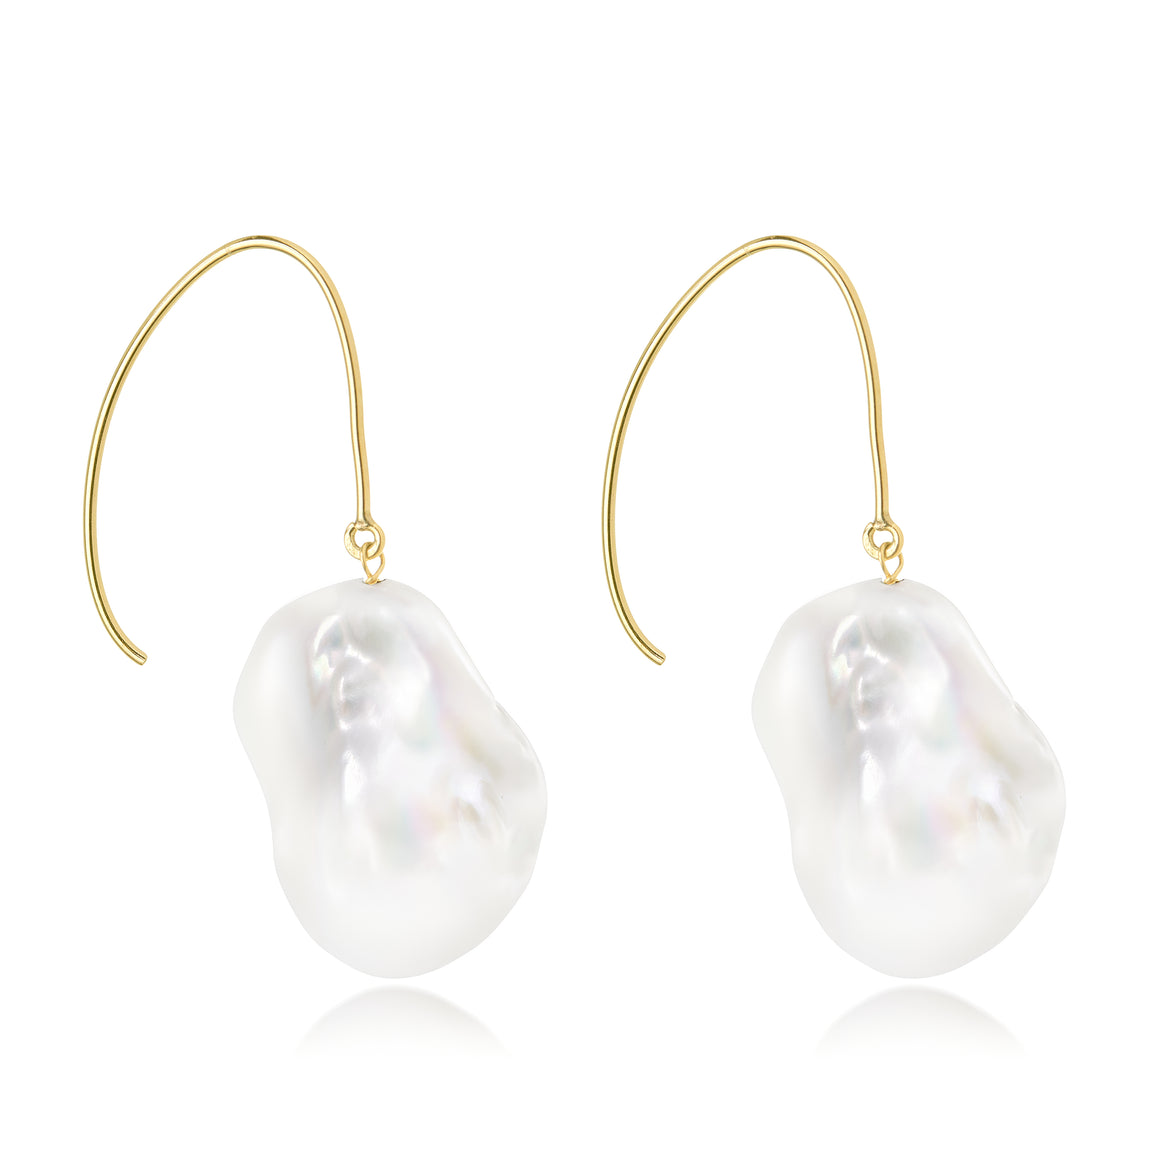 Le Lac Large White Baroque Freshwater Pearl Dangle Earrings ~14K Yellow Gold-Filled